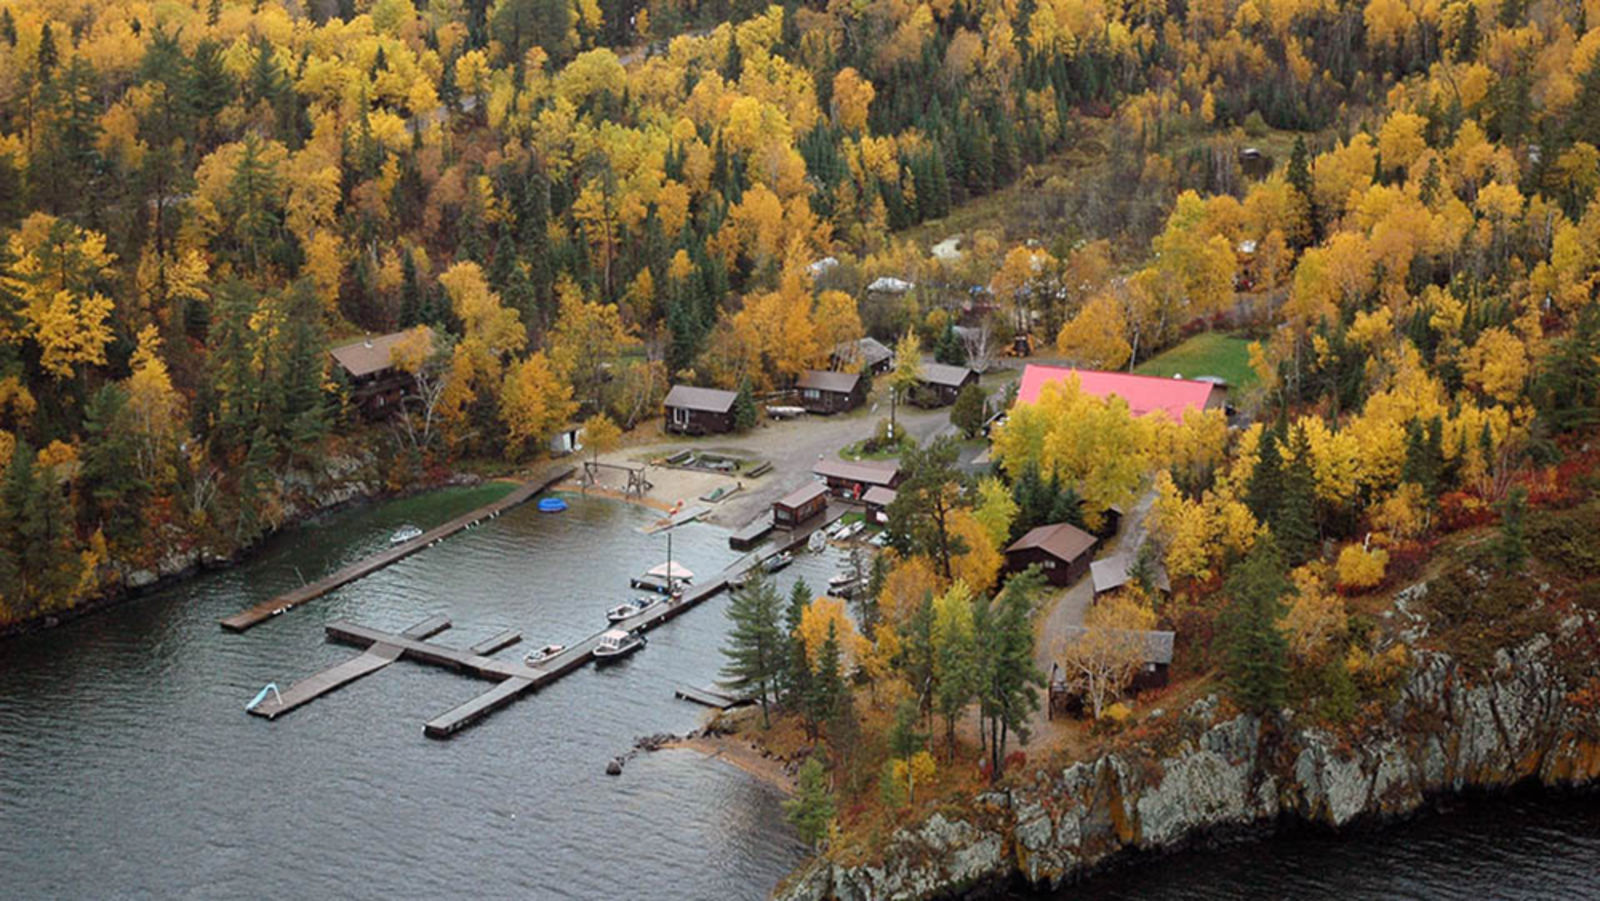 Smith Camps & Old Pilot's Pub | Sunset Country, Ontario, Canada